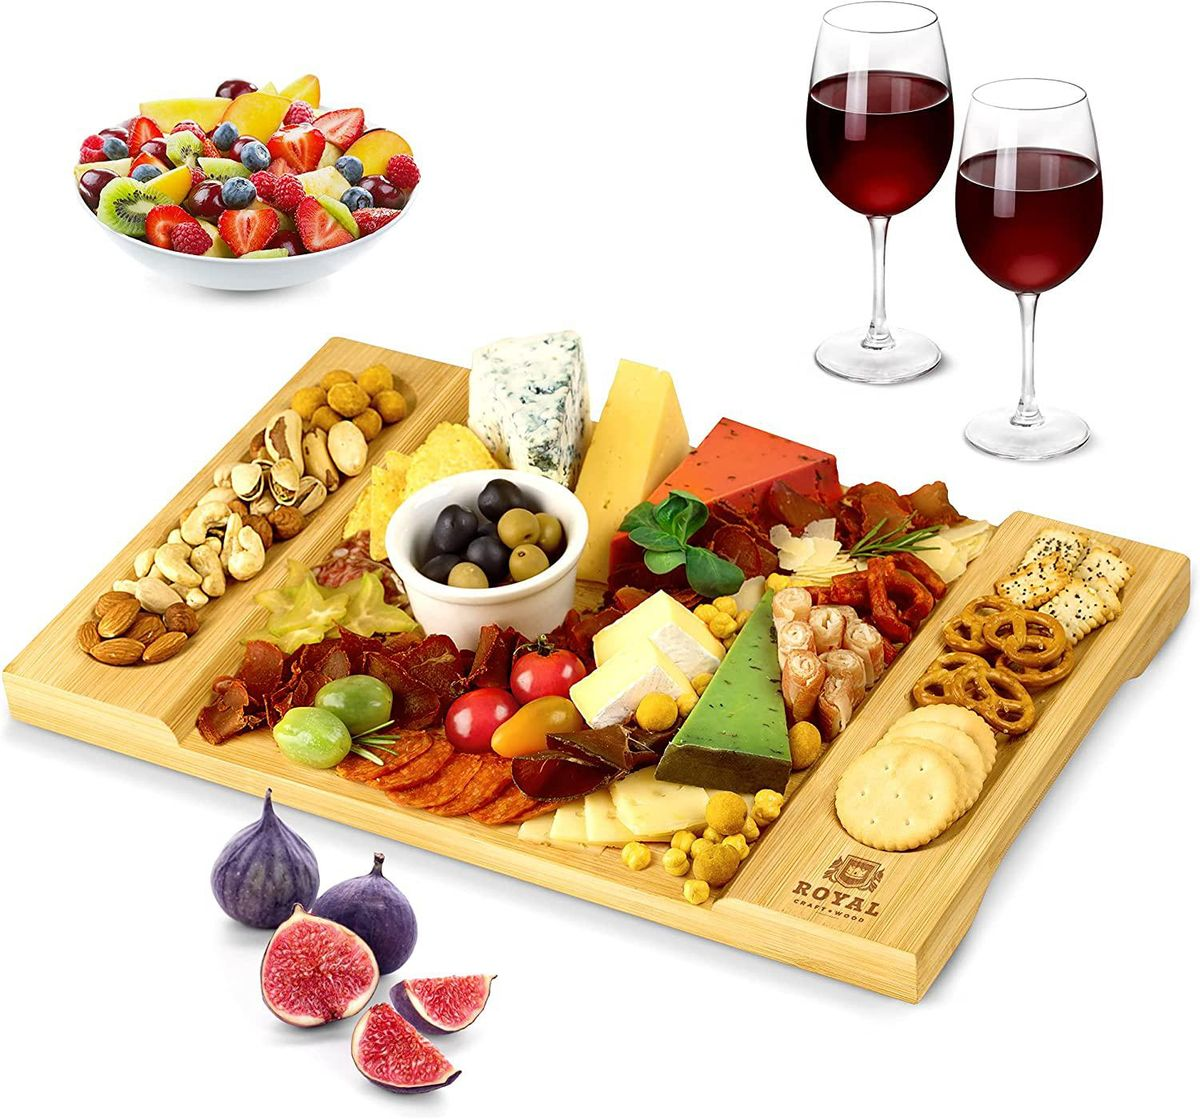 royal craft wood unique bamboo cheese board charcuterie platter and serving tray